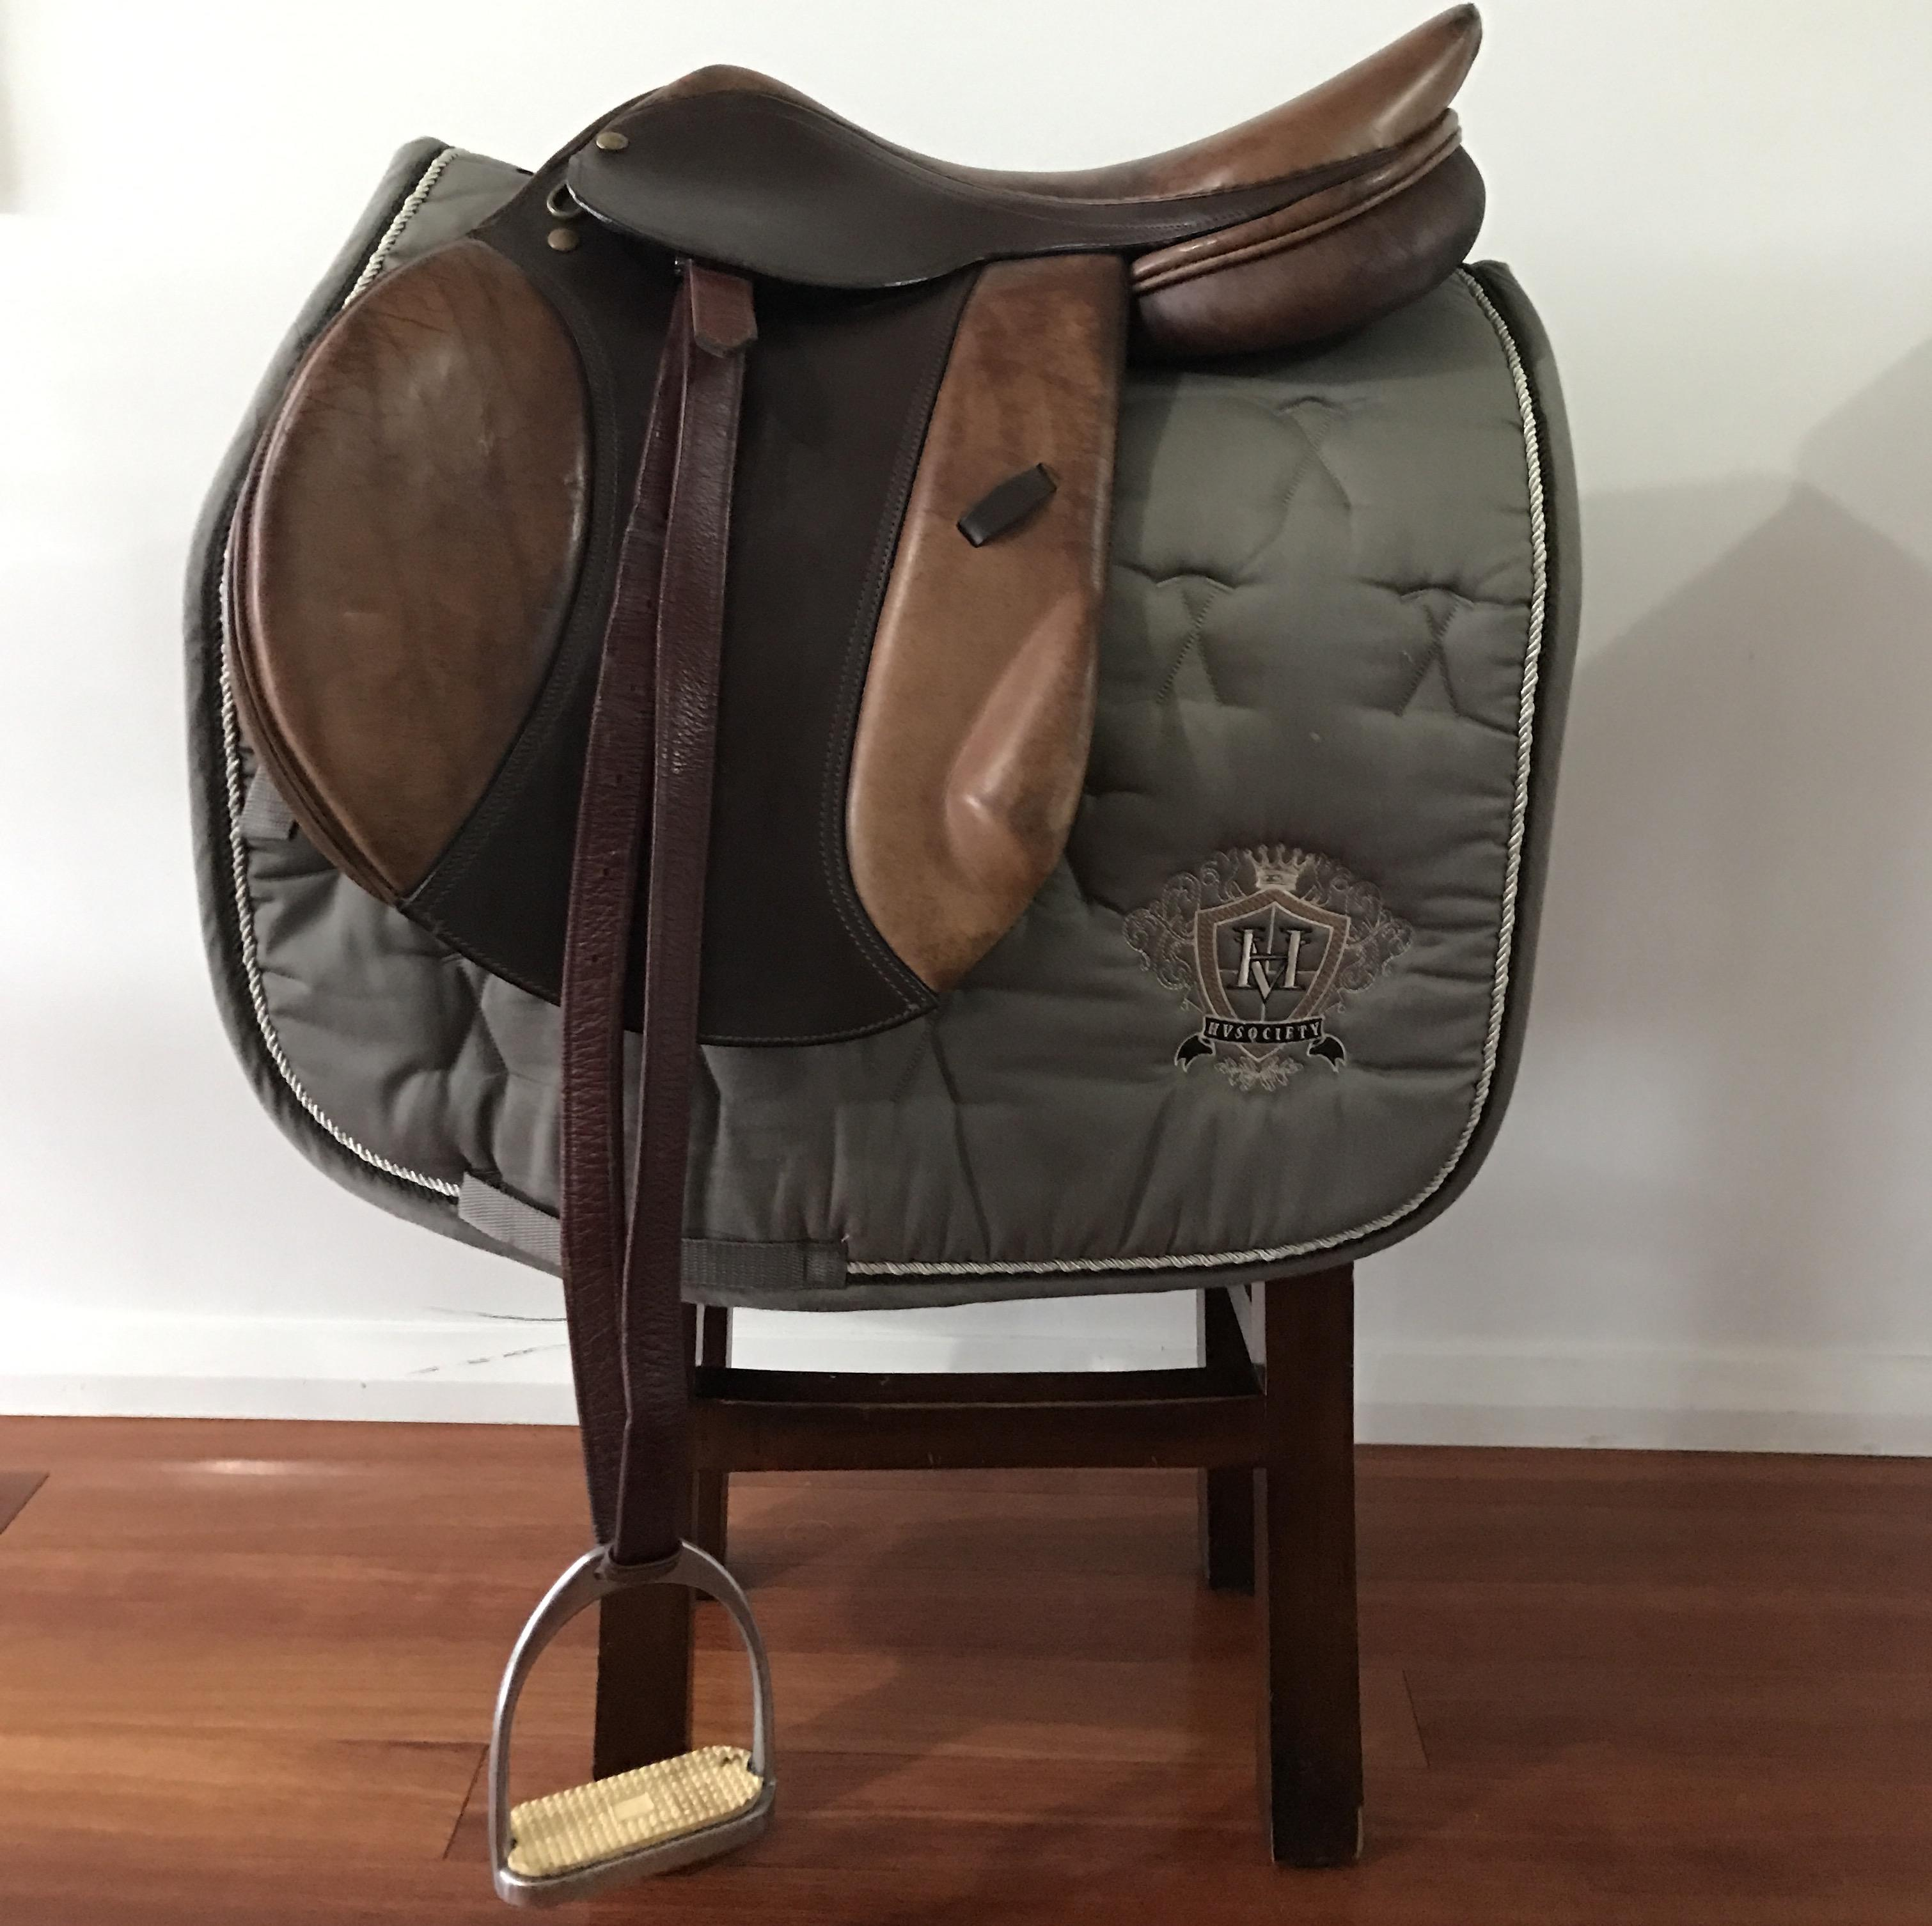 Leather show jumping saddle